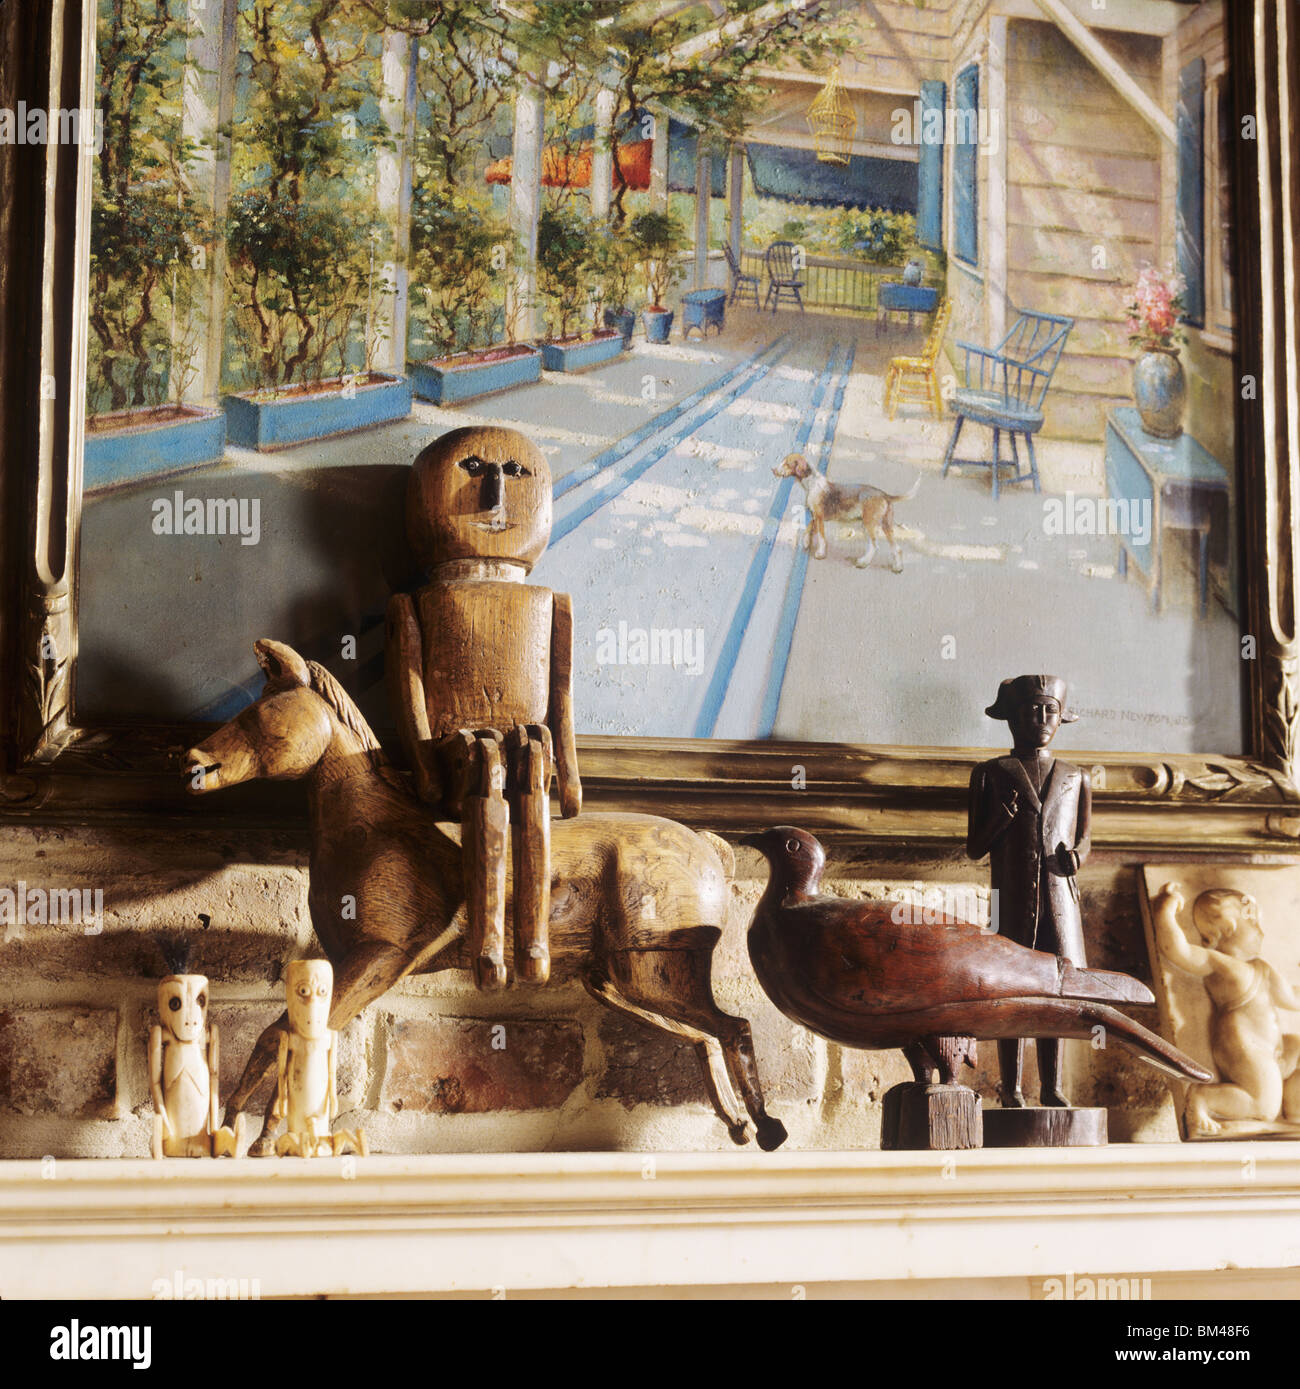 A collection of wooden figurines on a mantelpiece - Stock Image